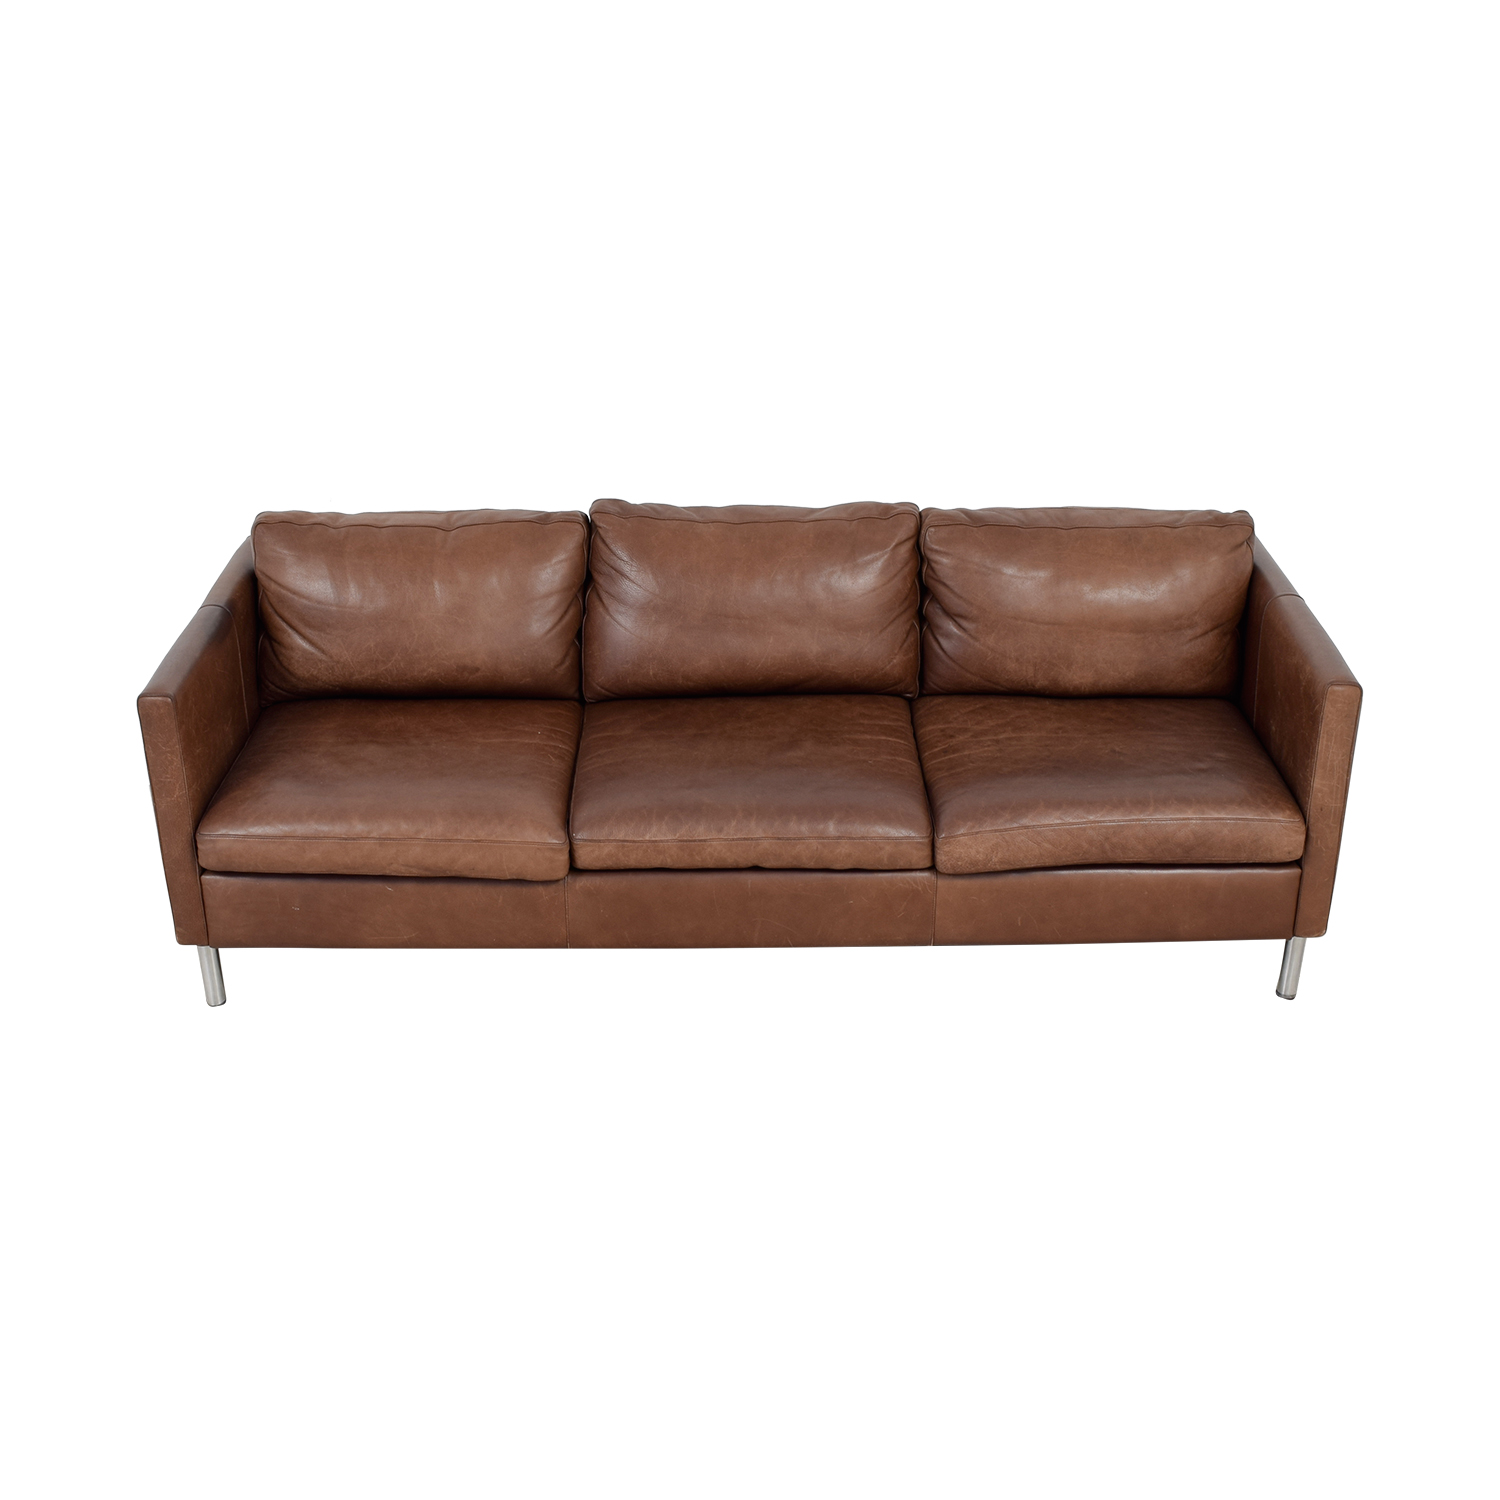 buy Room & Board Jackson Brown Leather Three-Cushion Sofa Room & Board